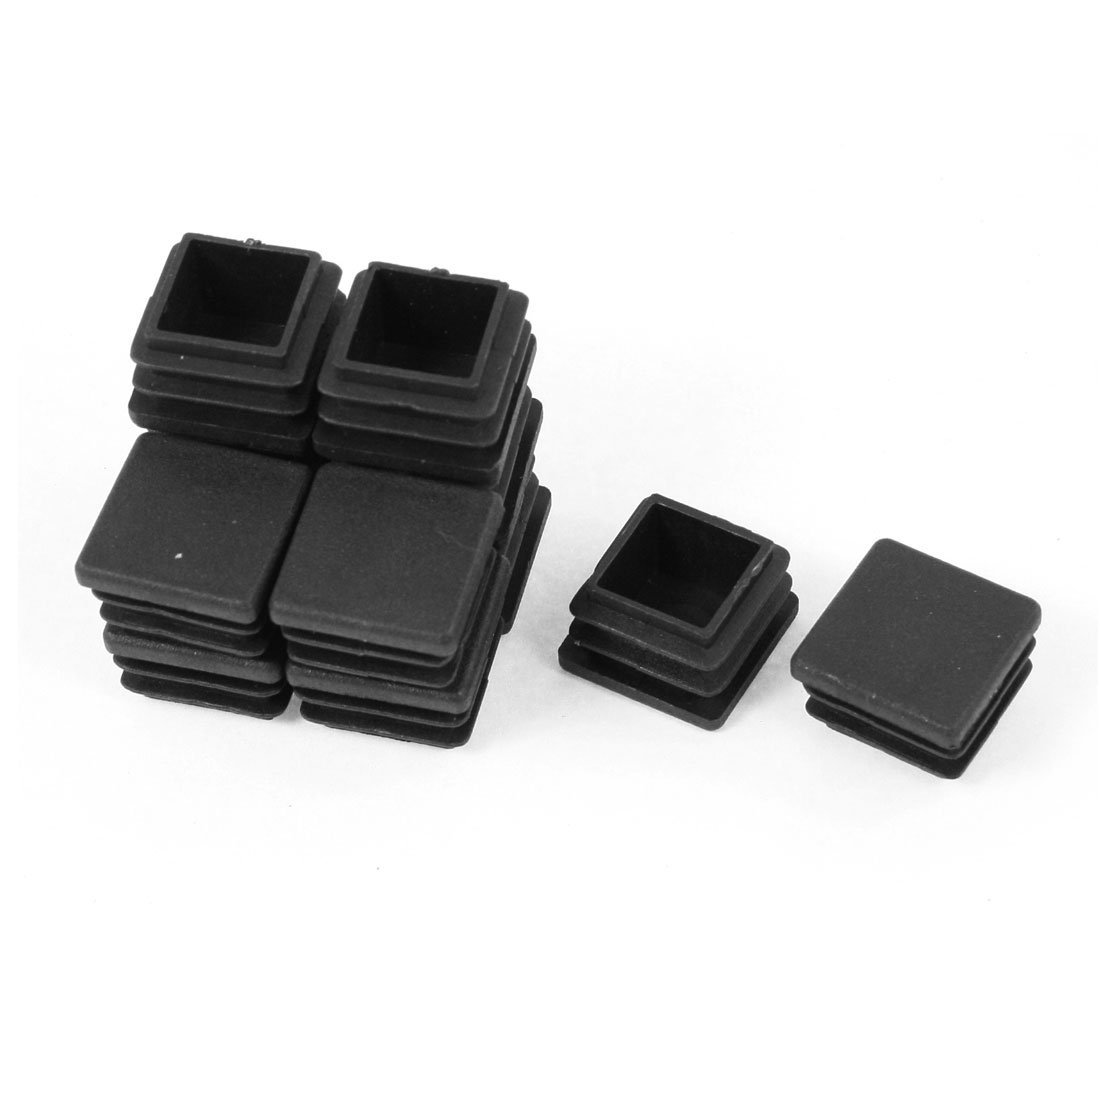 Promotion! 12 Pieces Black Plastic  Square Plugs for The Ends Table leg End Inserted Tube 20mm x 20mmPromotion! 12 Pieces Black Plastic  Square Plugs for The Ends Table leg End Inserted Tube 20mm x 20mm